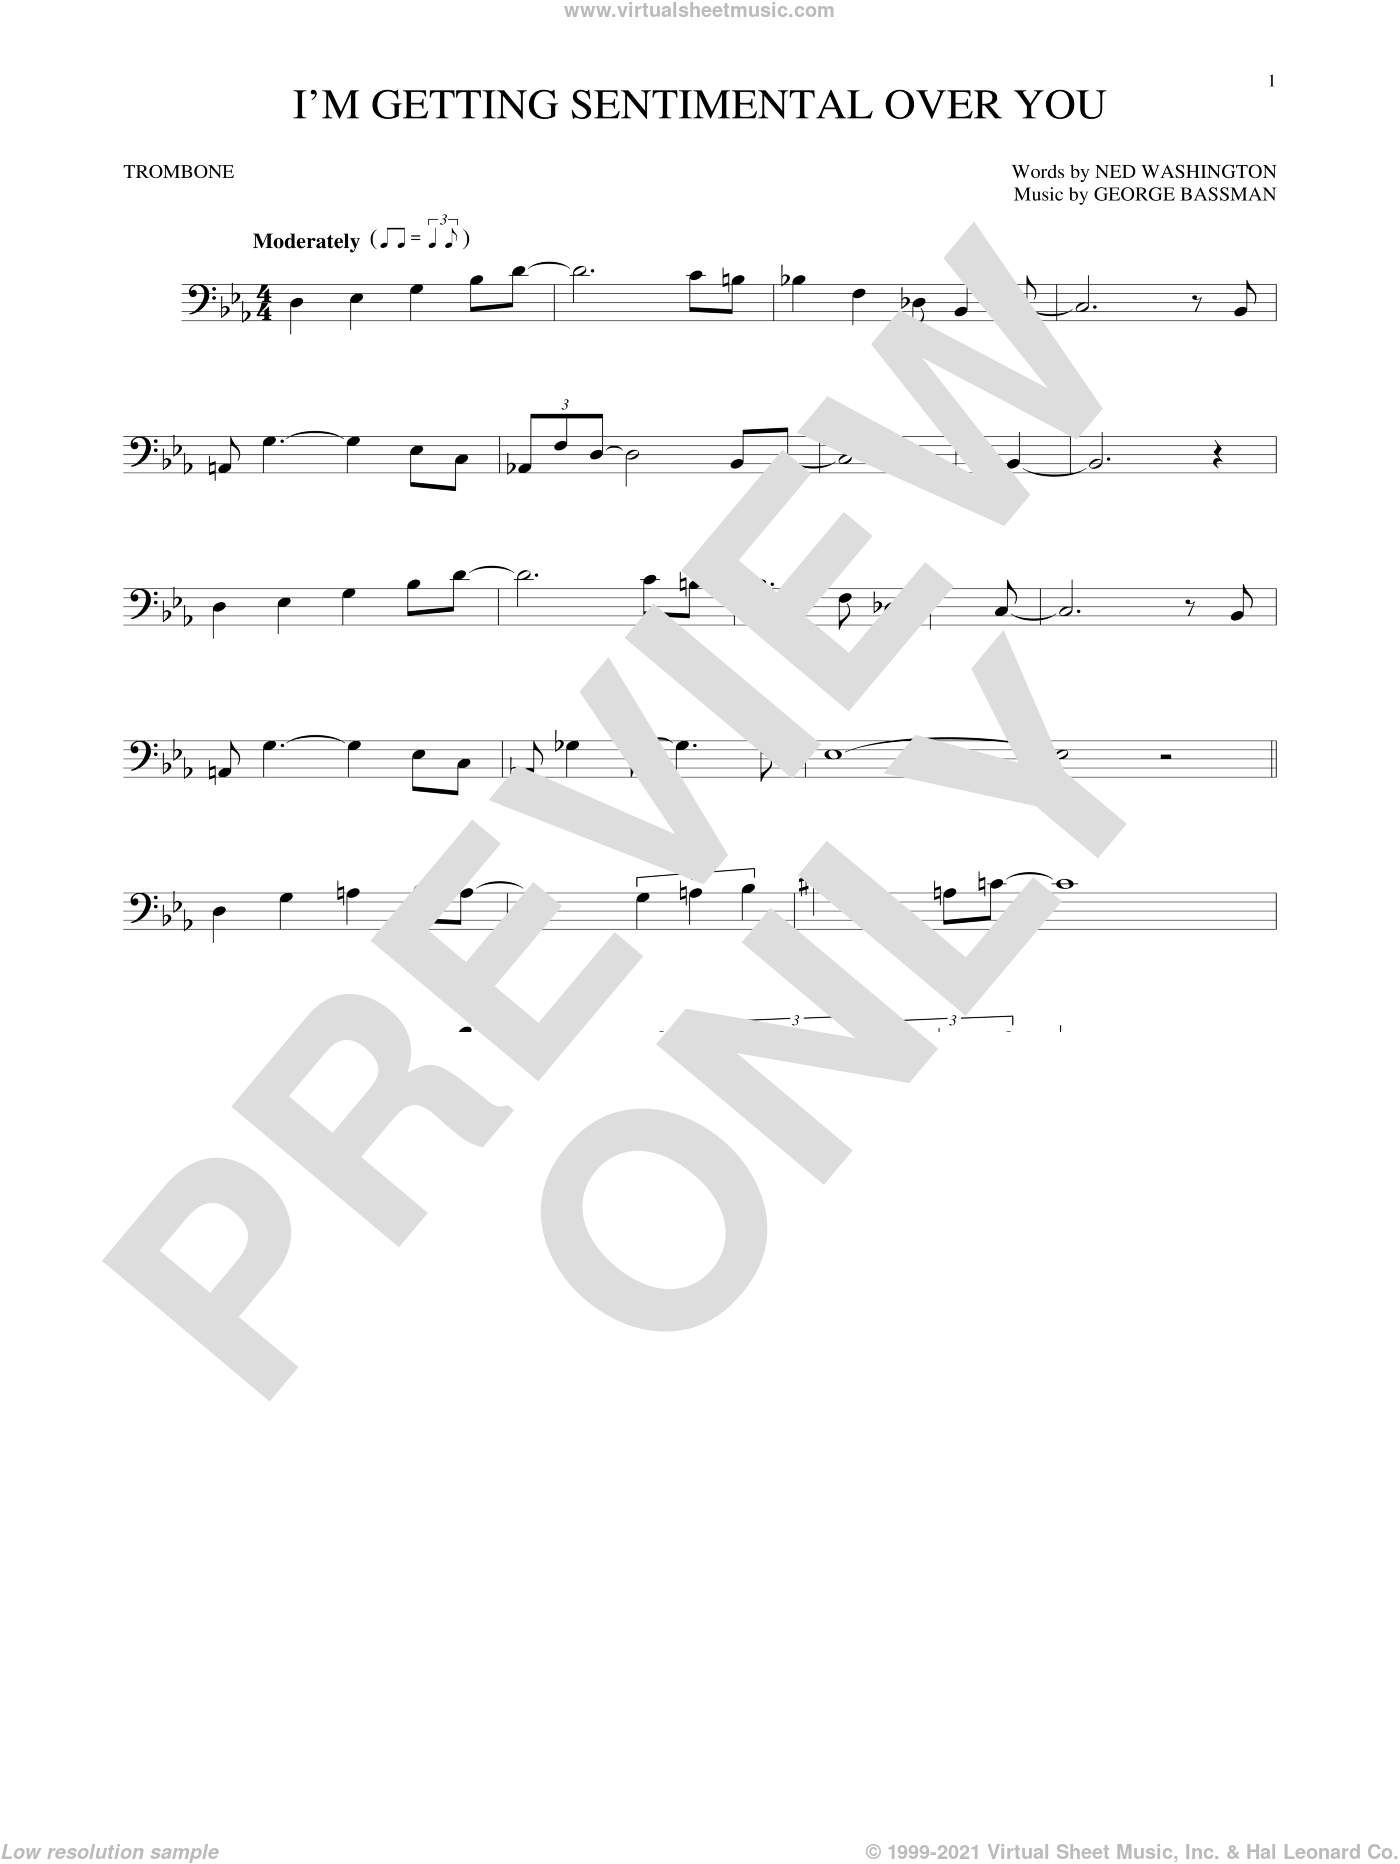 I'm Getting Sentimental Over You sheet music for trombone solo by Ned Washington and George Bassman, intermediate skill level